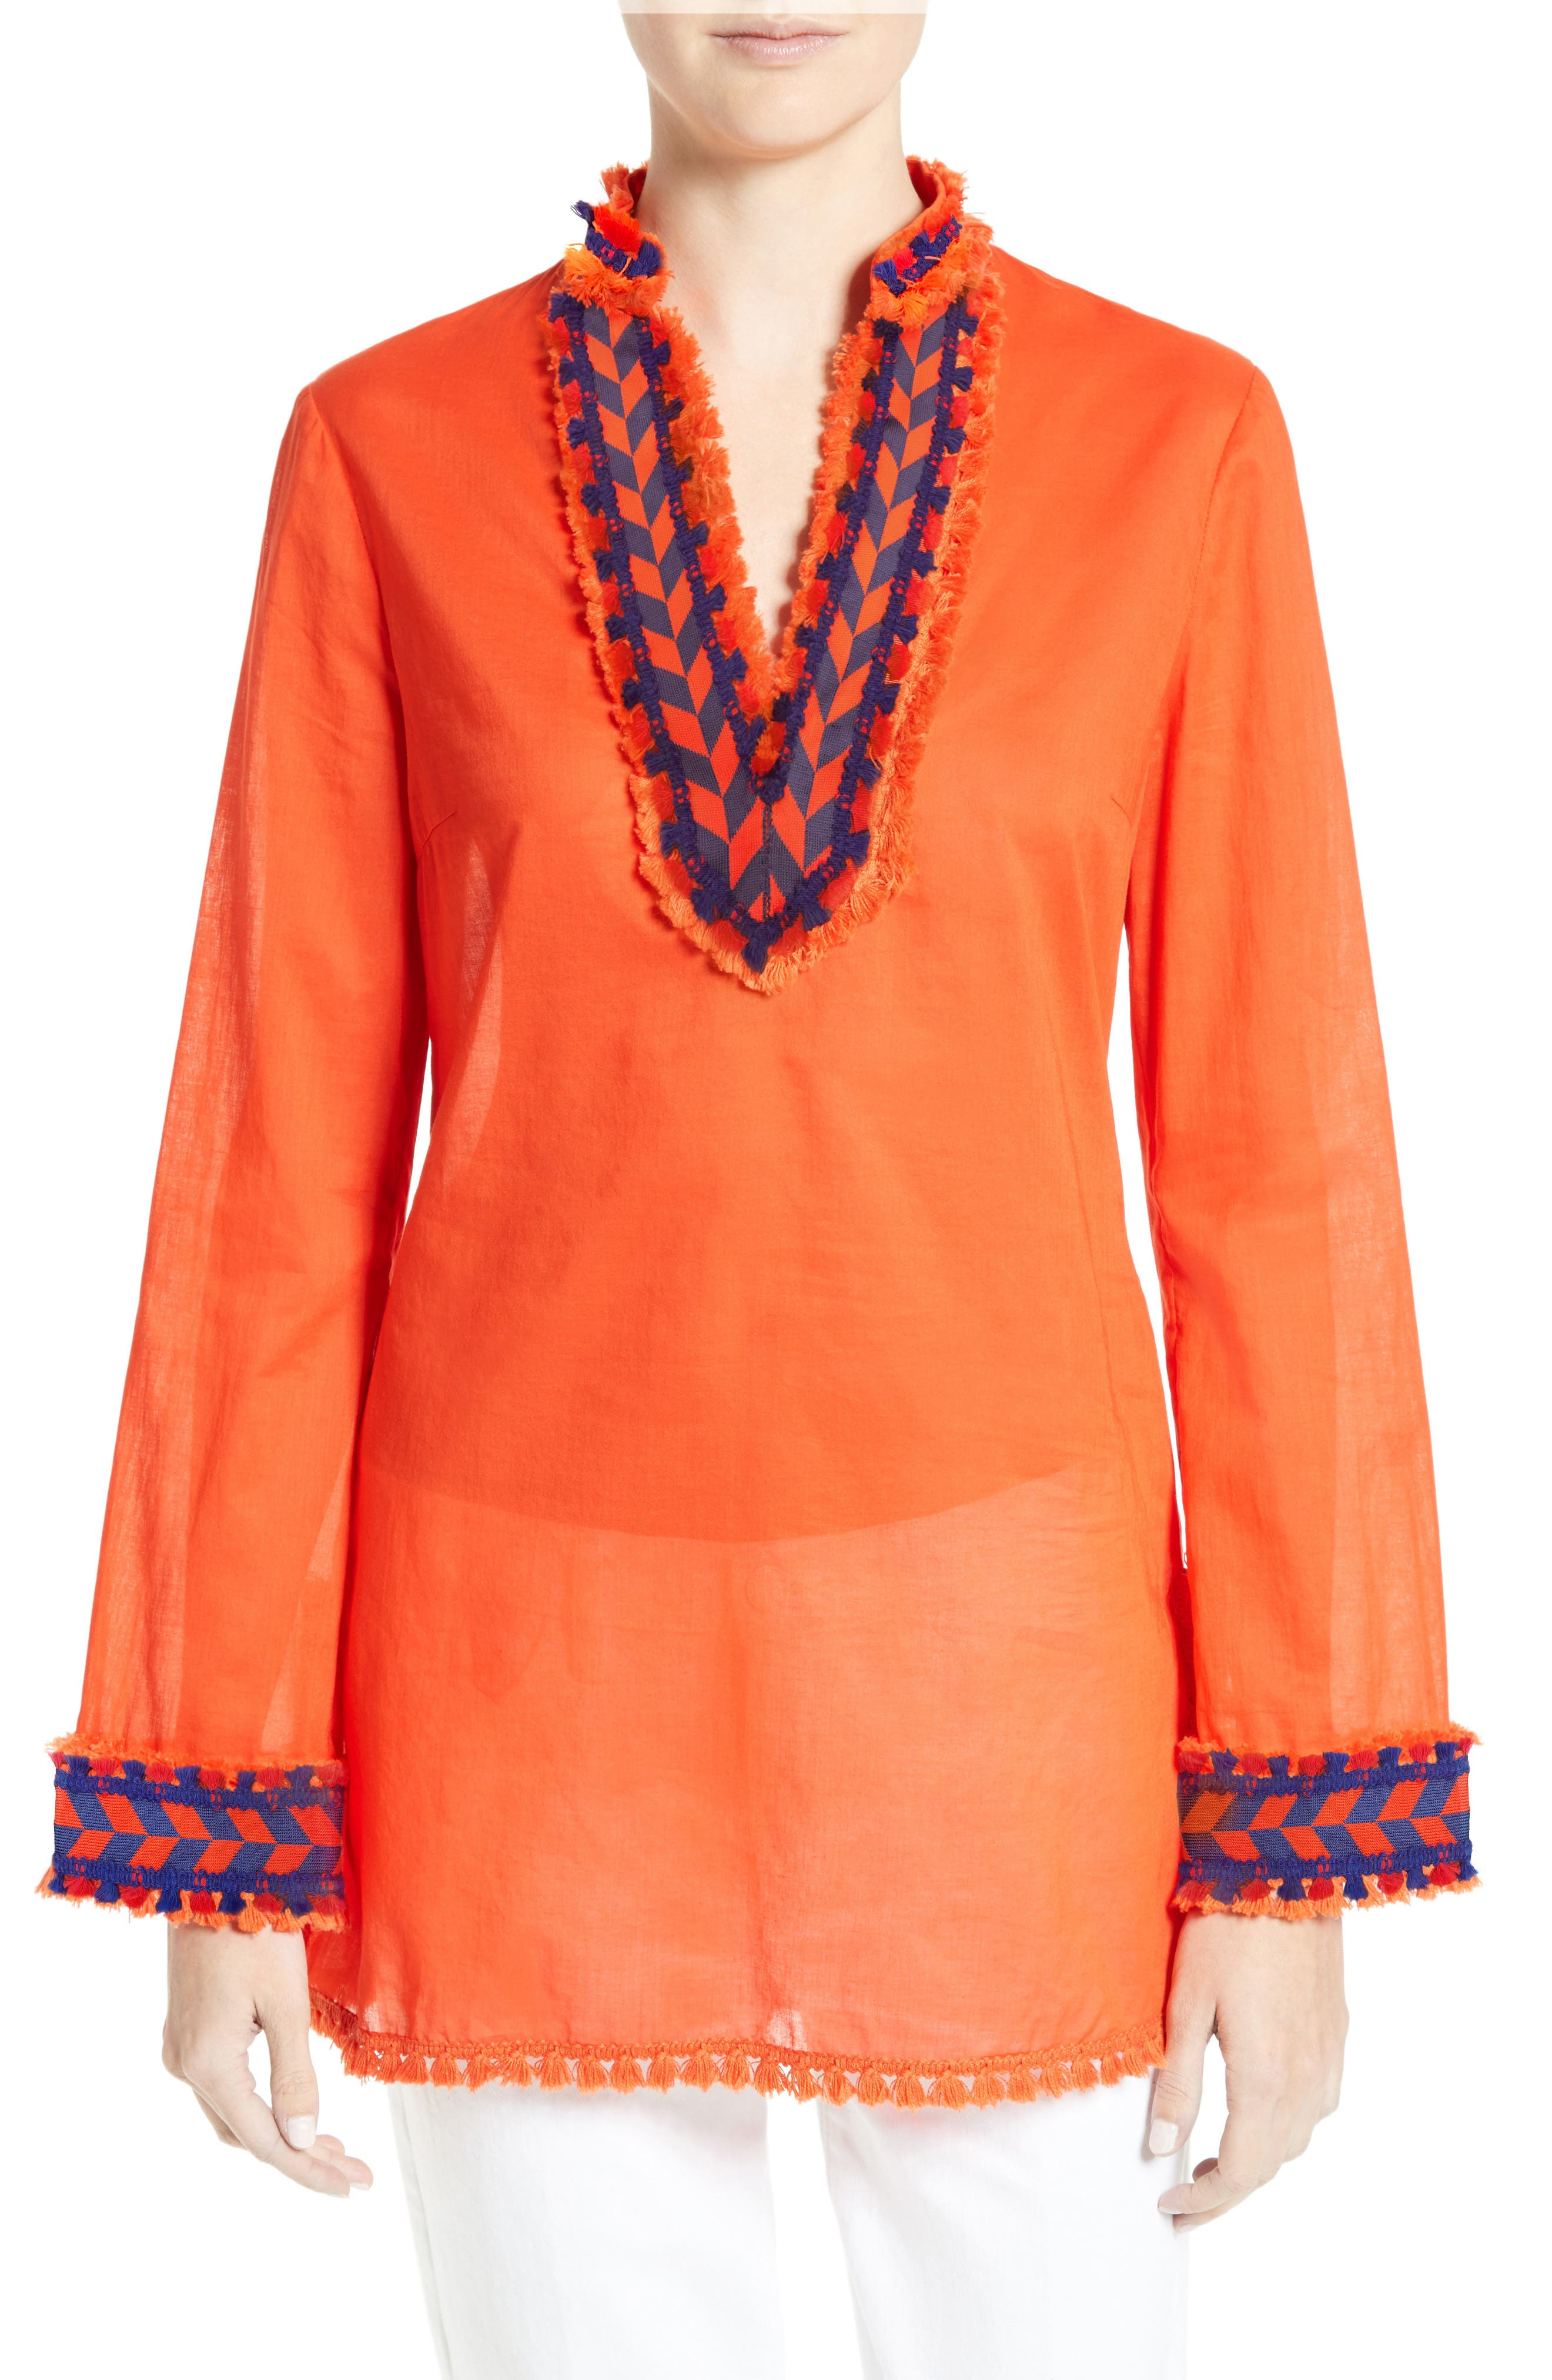 Alternate Image 1 Selected - Tory Burch Tory Embellished Sheer Poplin Tunic